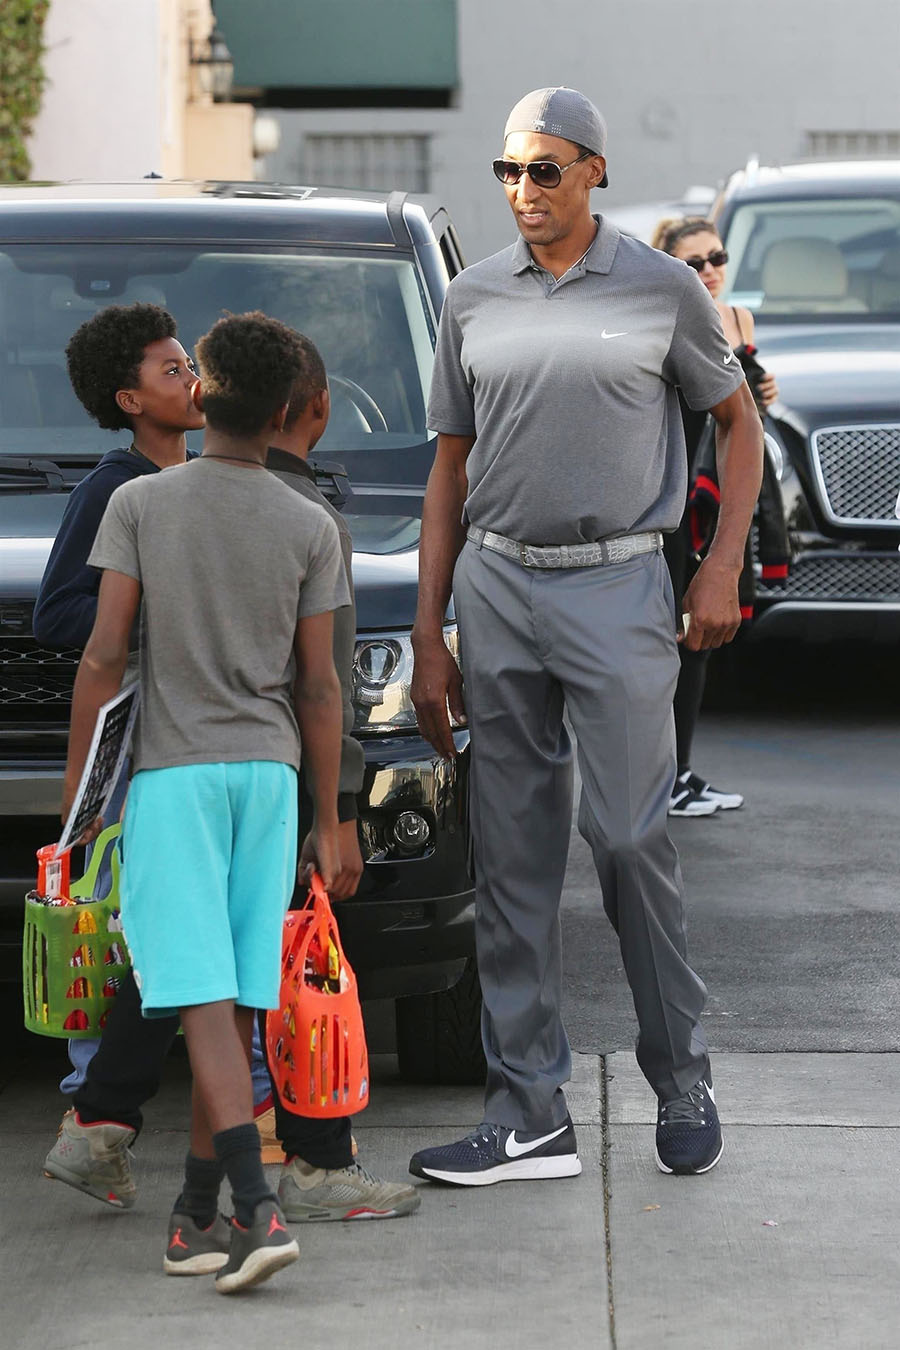 Scottie Pippen and young fans